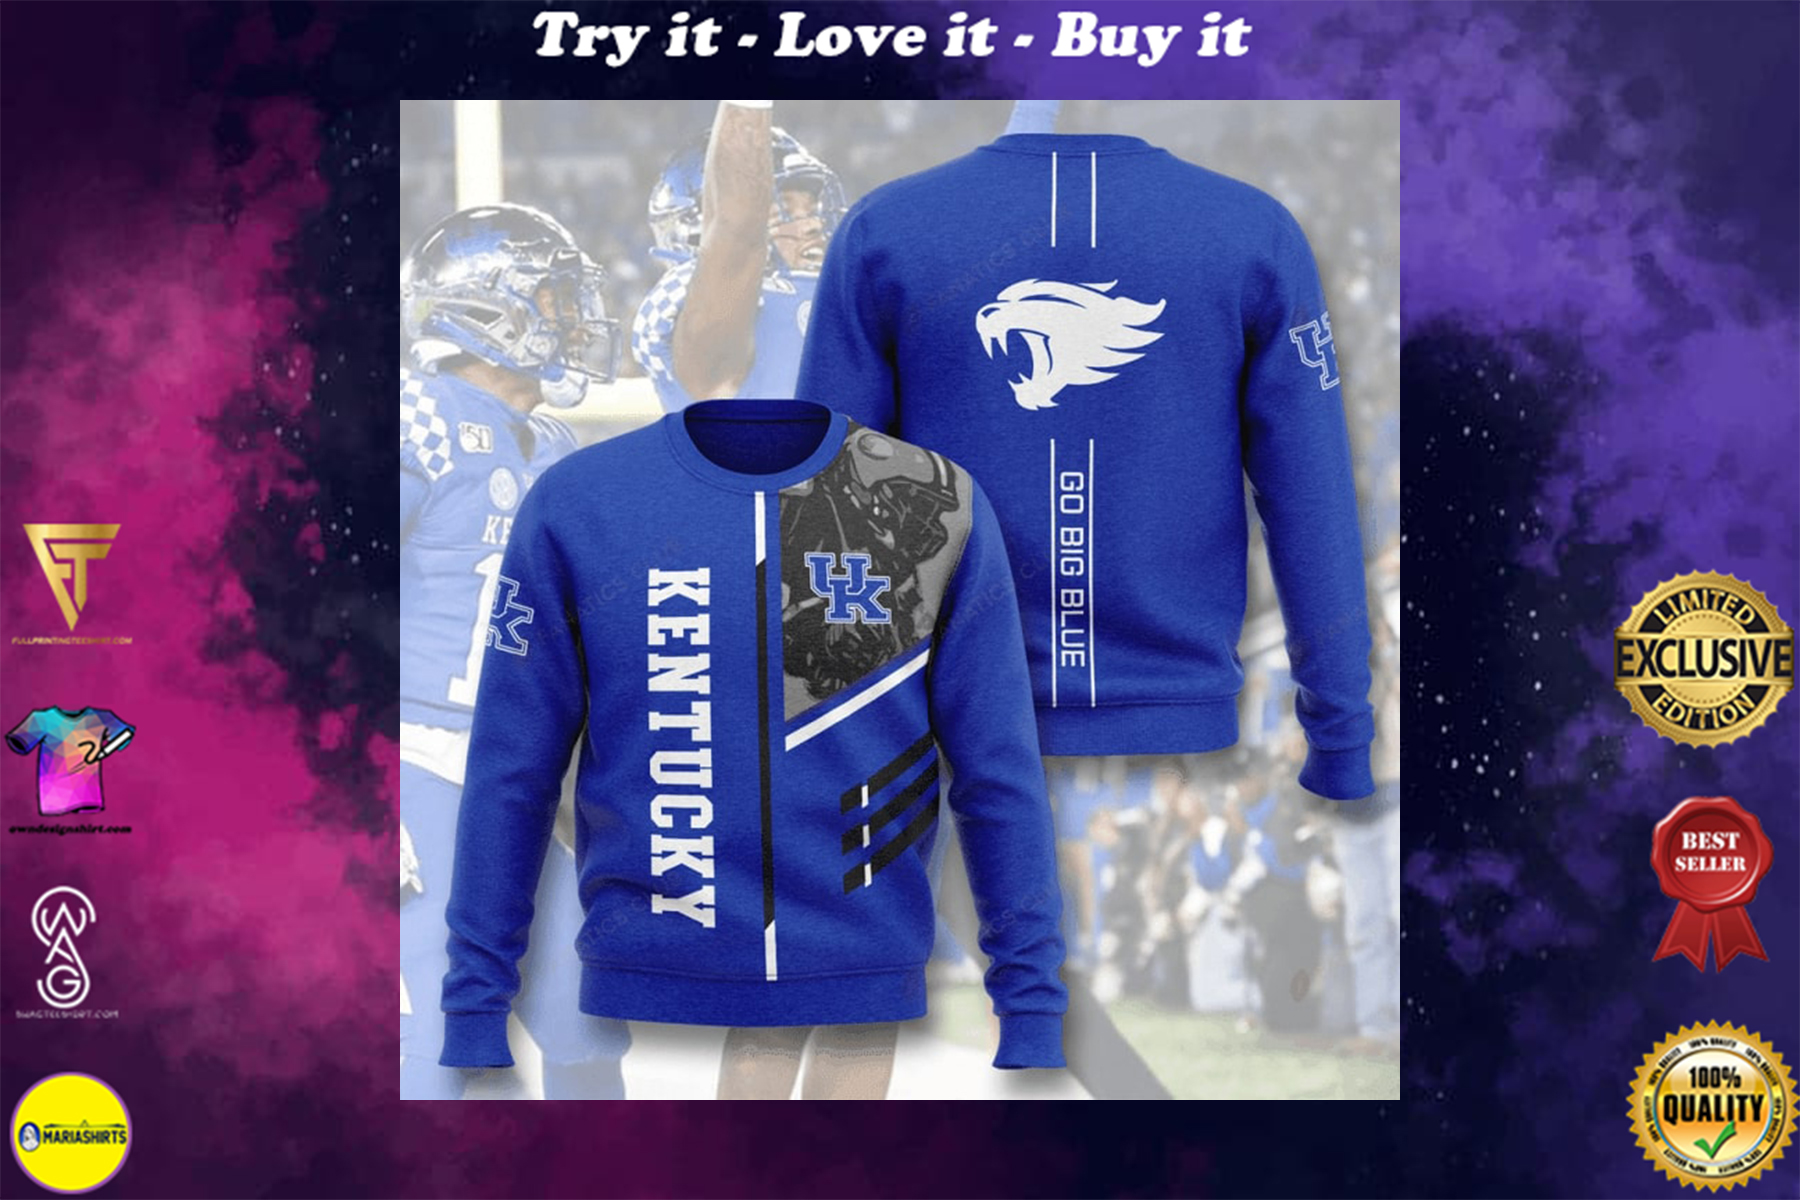 [highest selling] kentucky wildcats go big blue full printing ugly sweater - maria